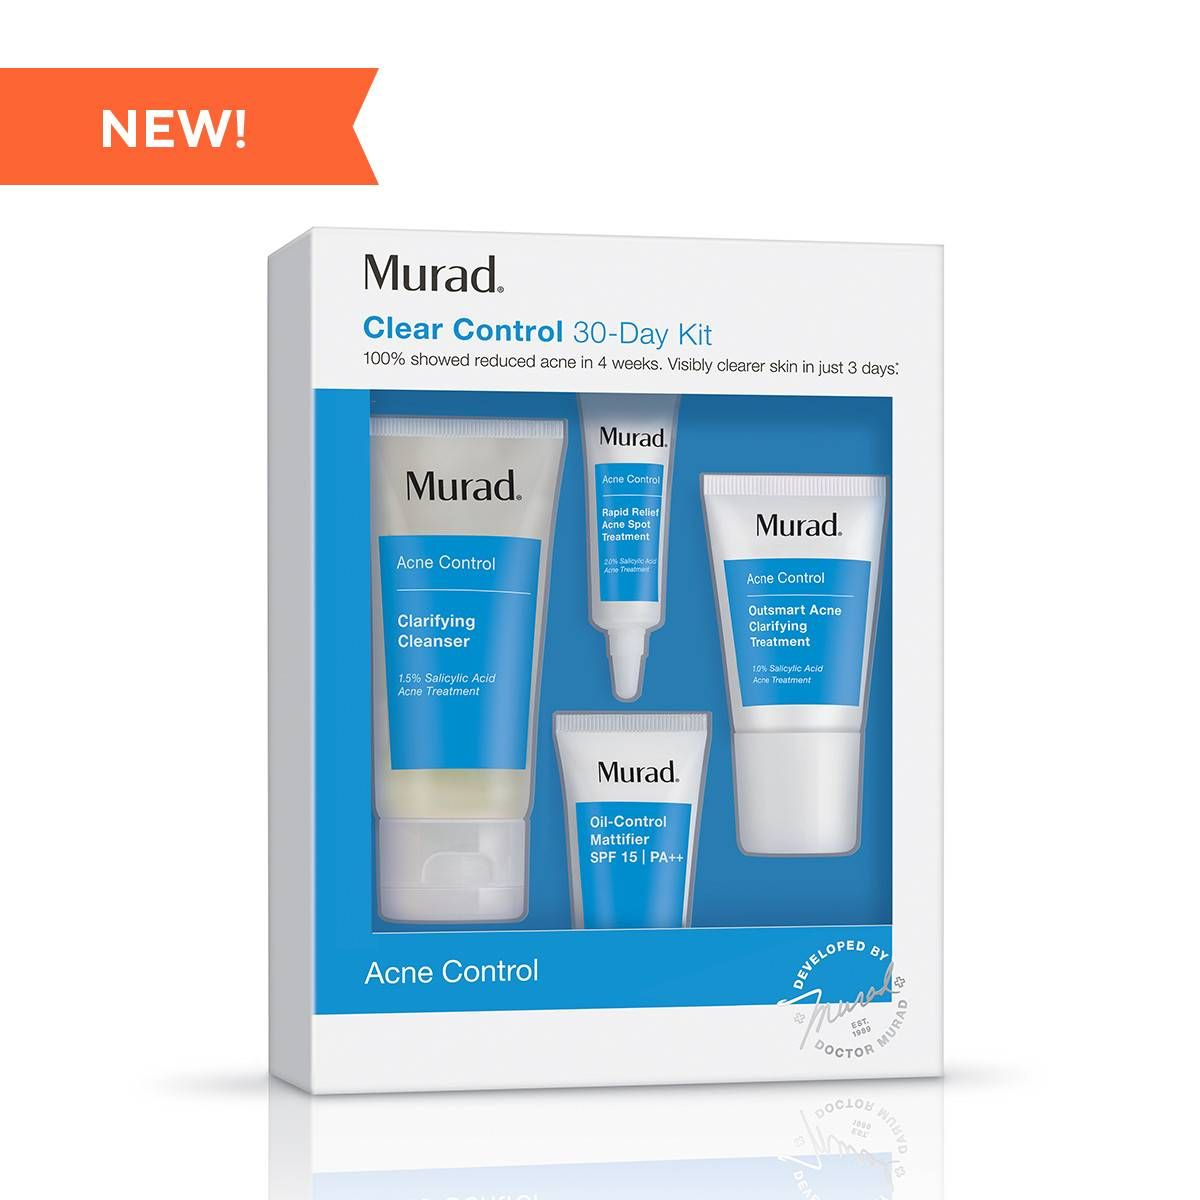 Combo Treatments For Oily Skin And Acne Murad Acne Treatments